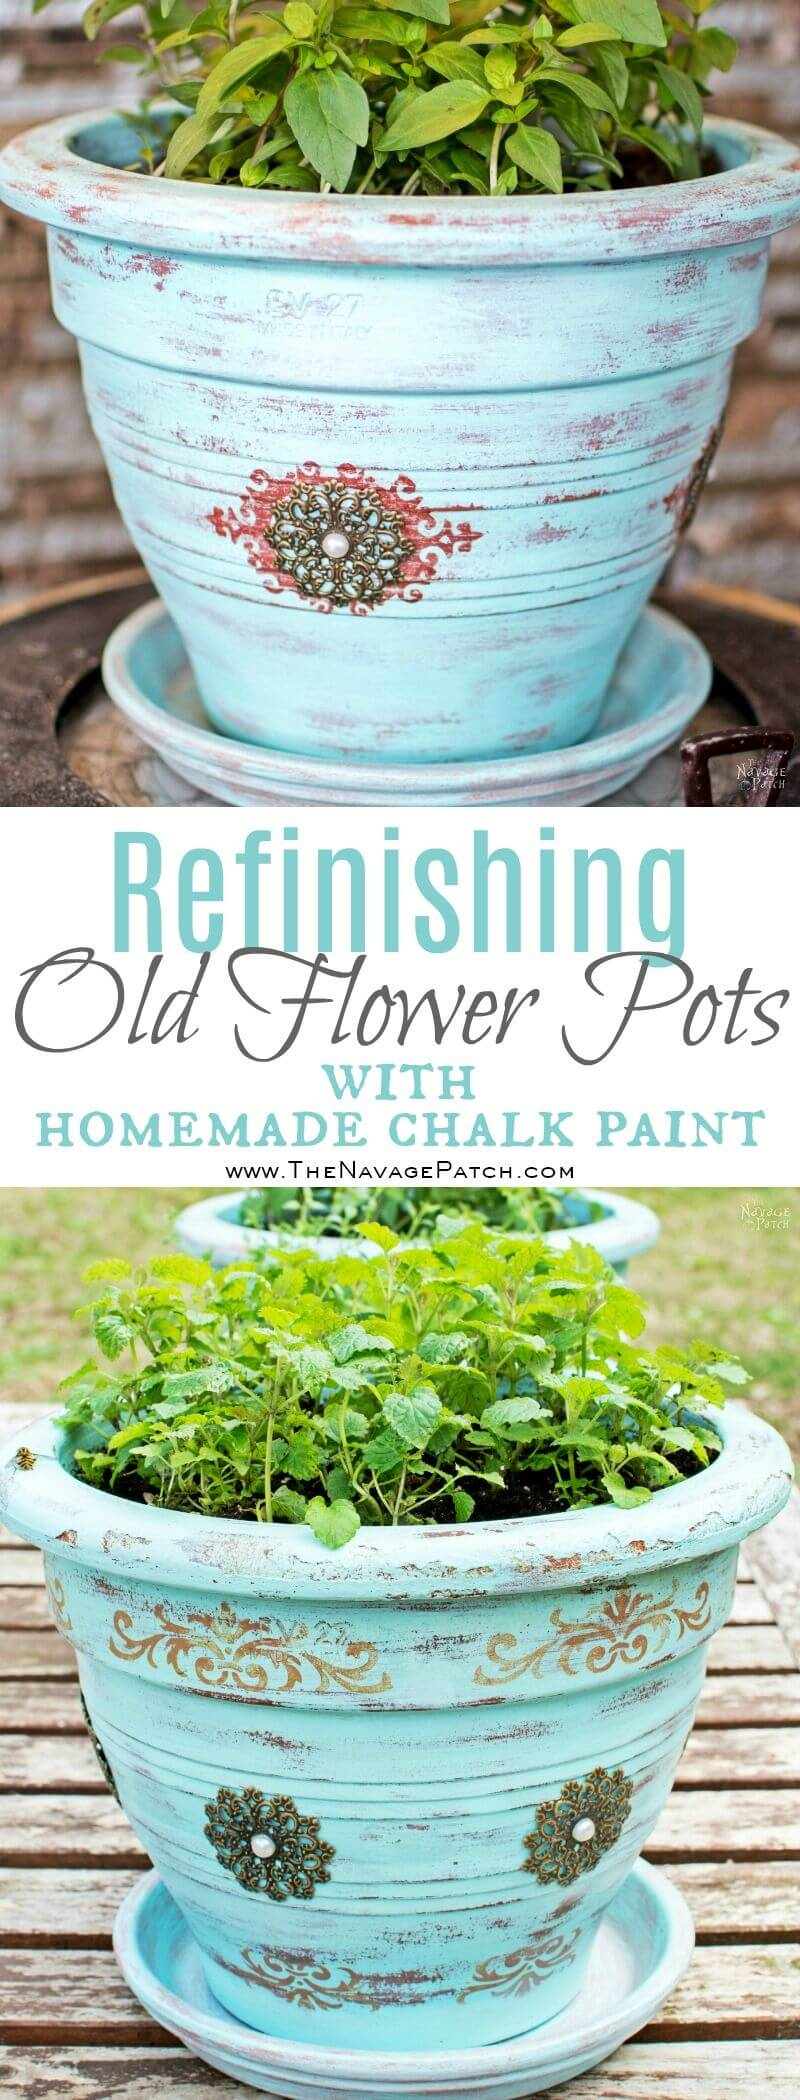 Chalk Paint Creates Antique Charm in Pots